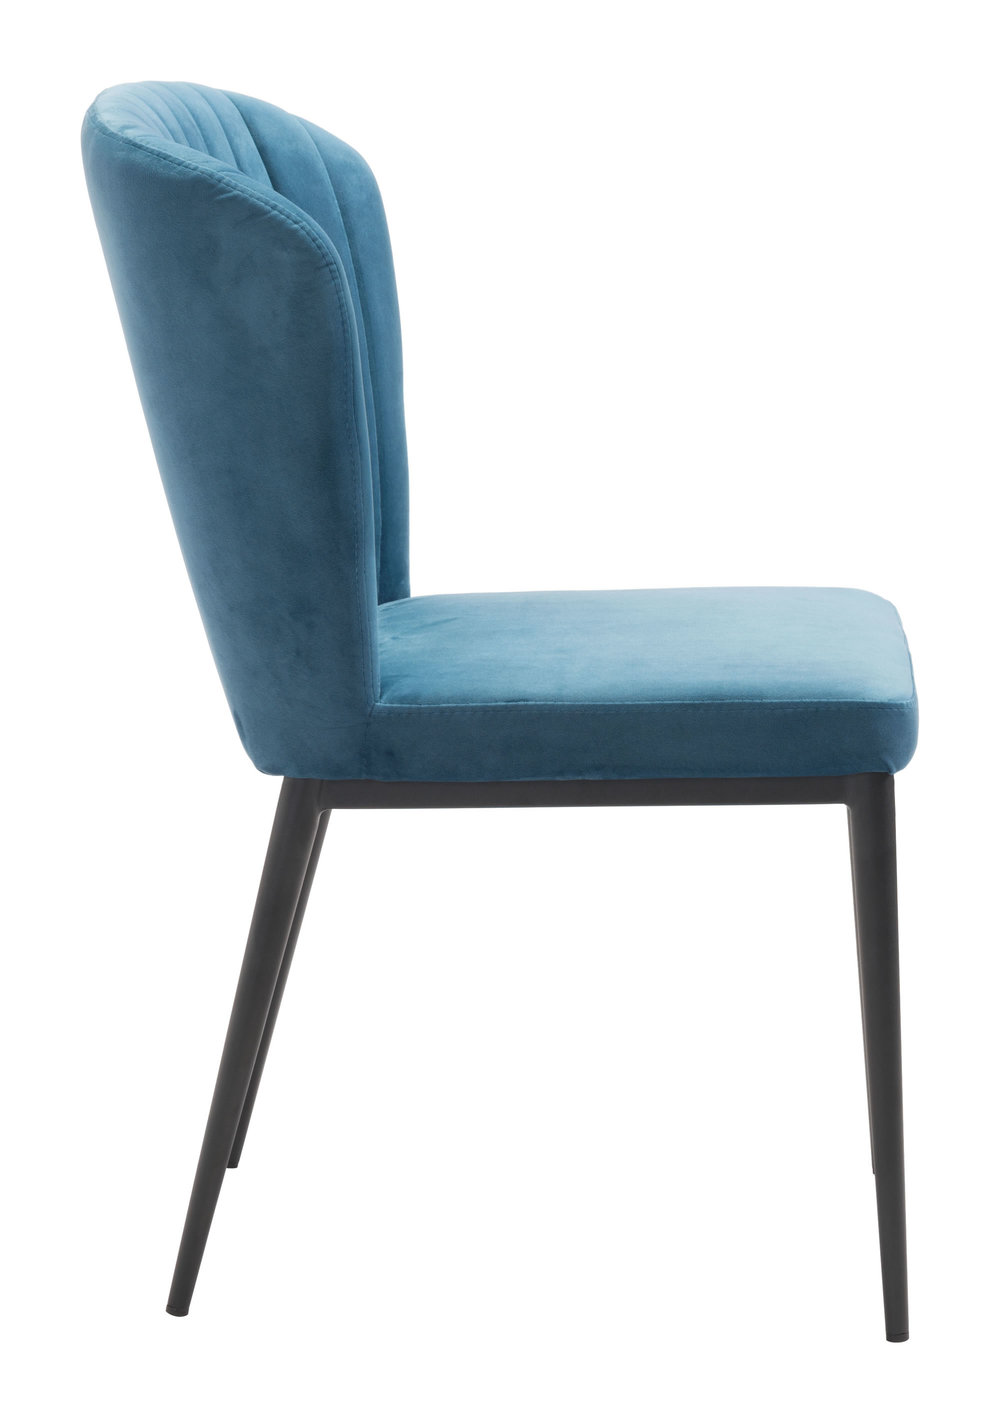 ZUO MODERN CONTEMPORARY, INC - Tolivere Dining Chair - Set of 2 - Blue